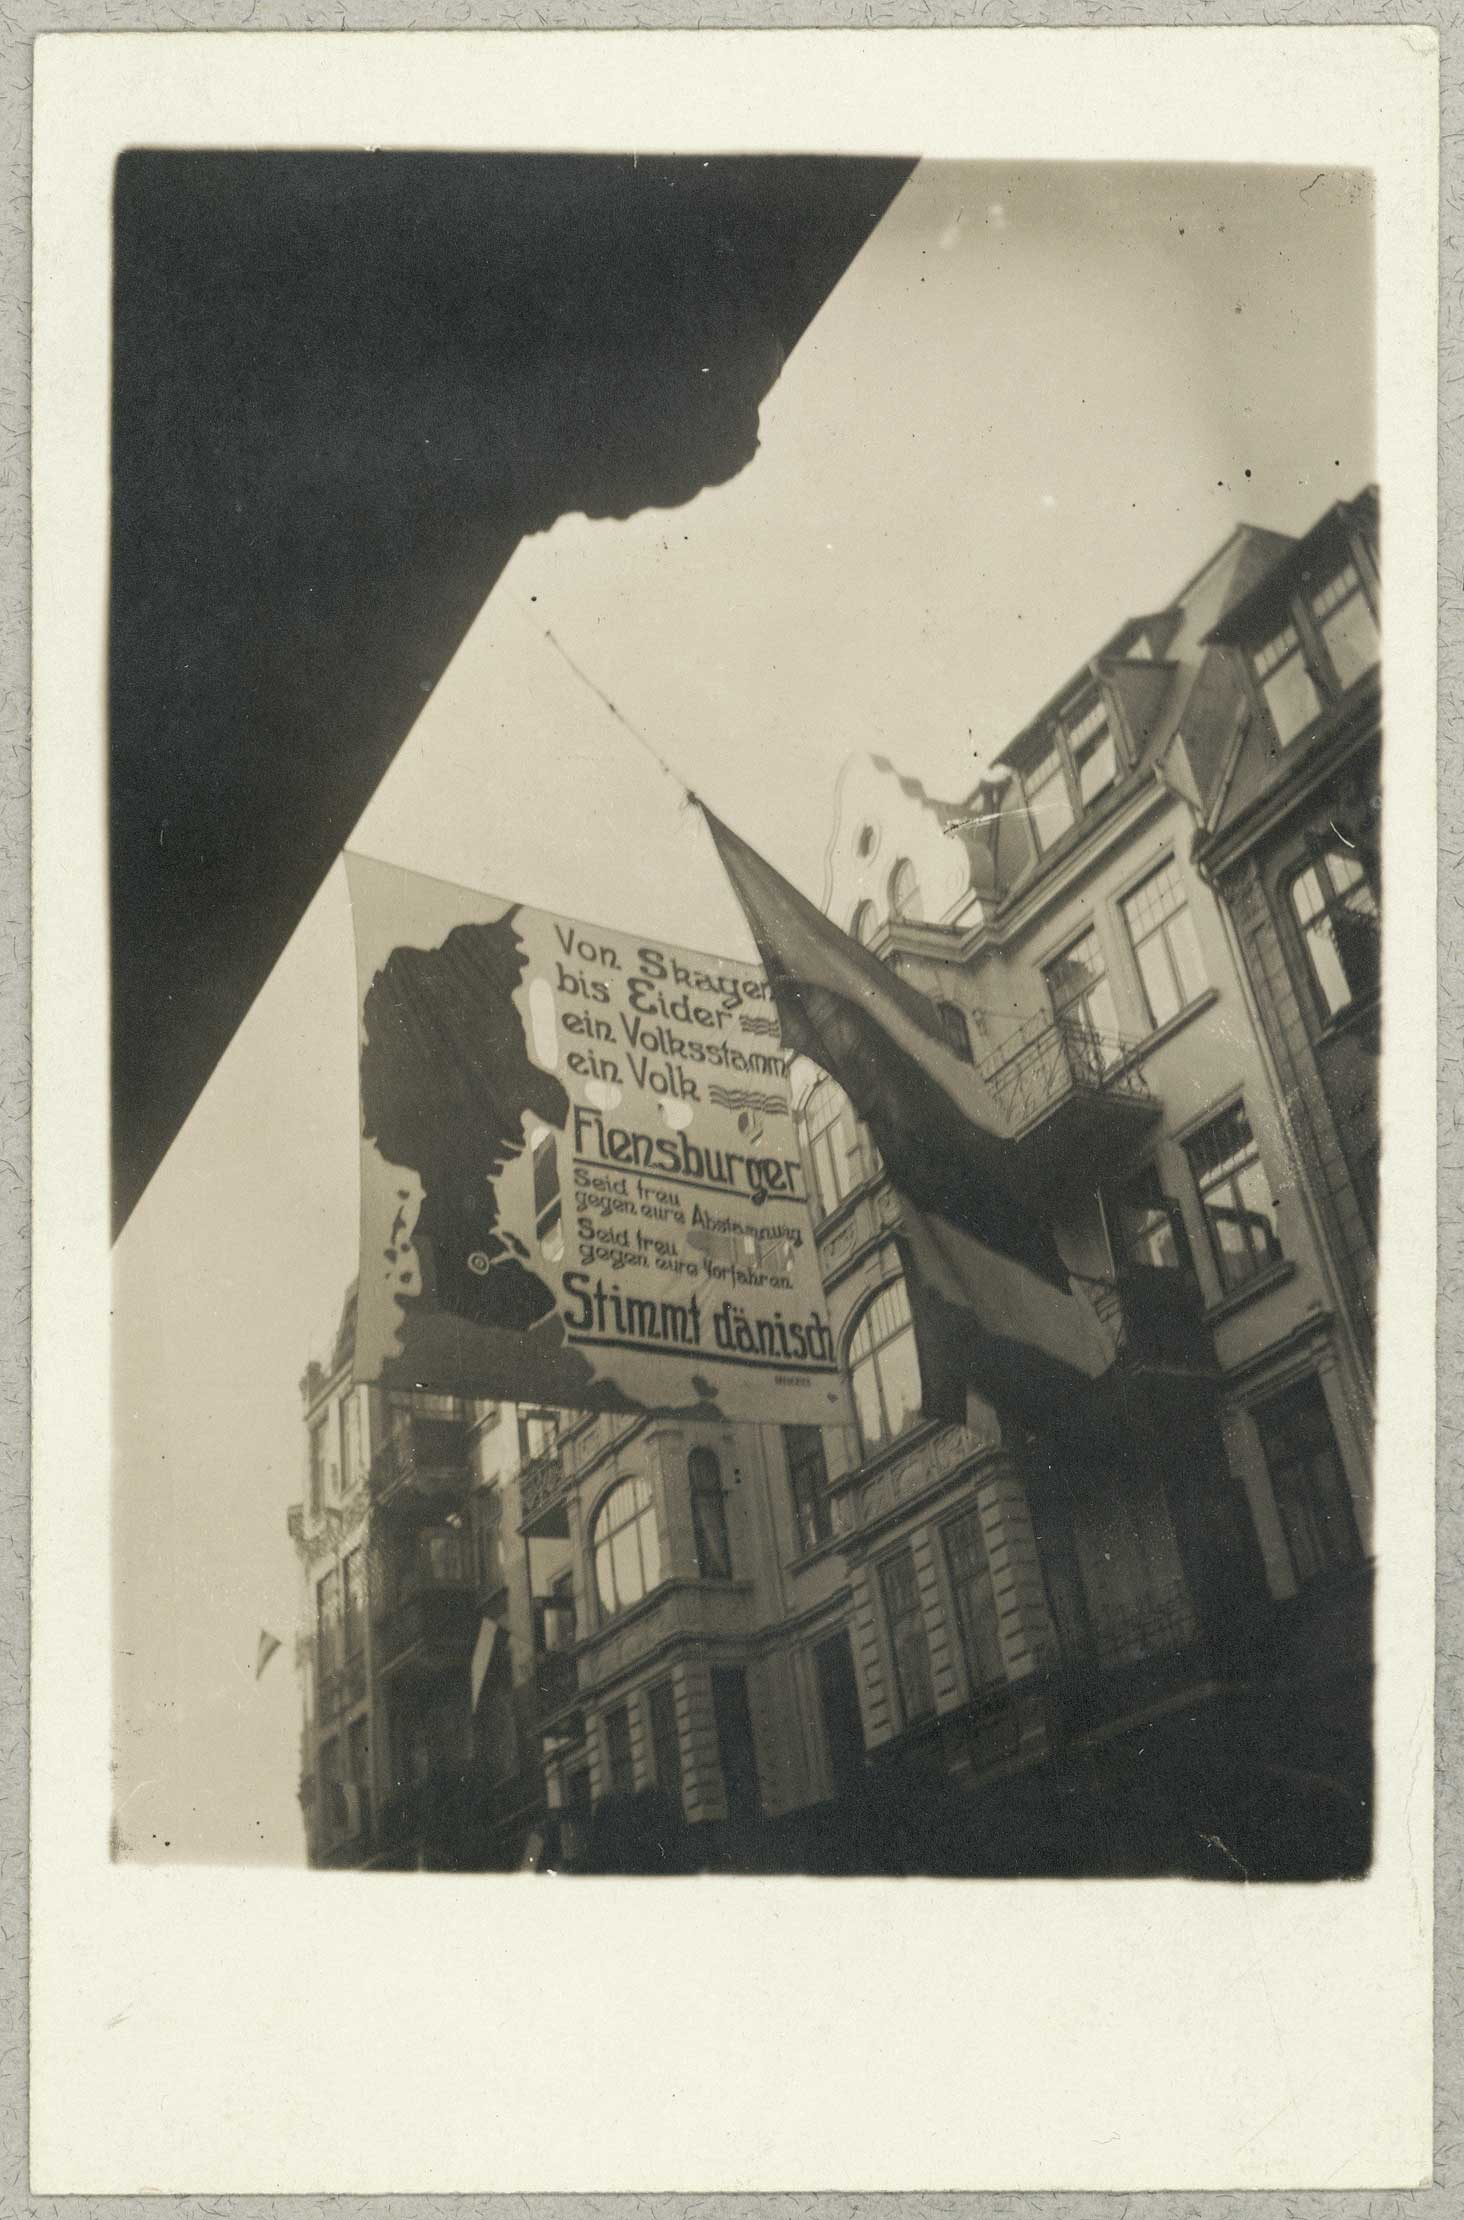 fb972432ea0 Campaigning following one of the referendums decreed by the Treaty of  Versailles. This huge banner